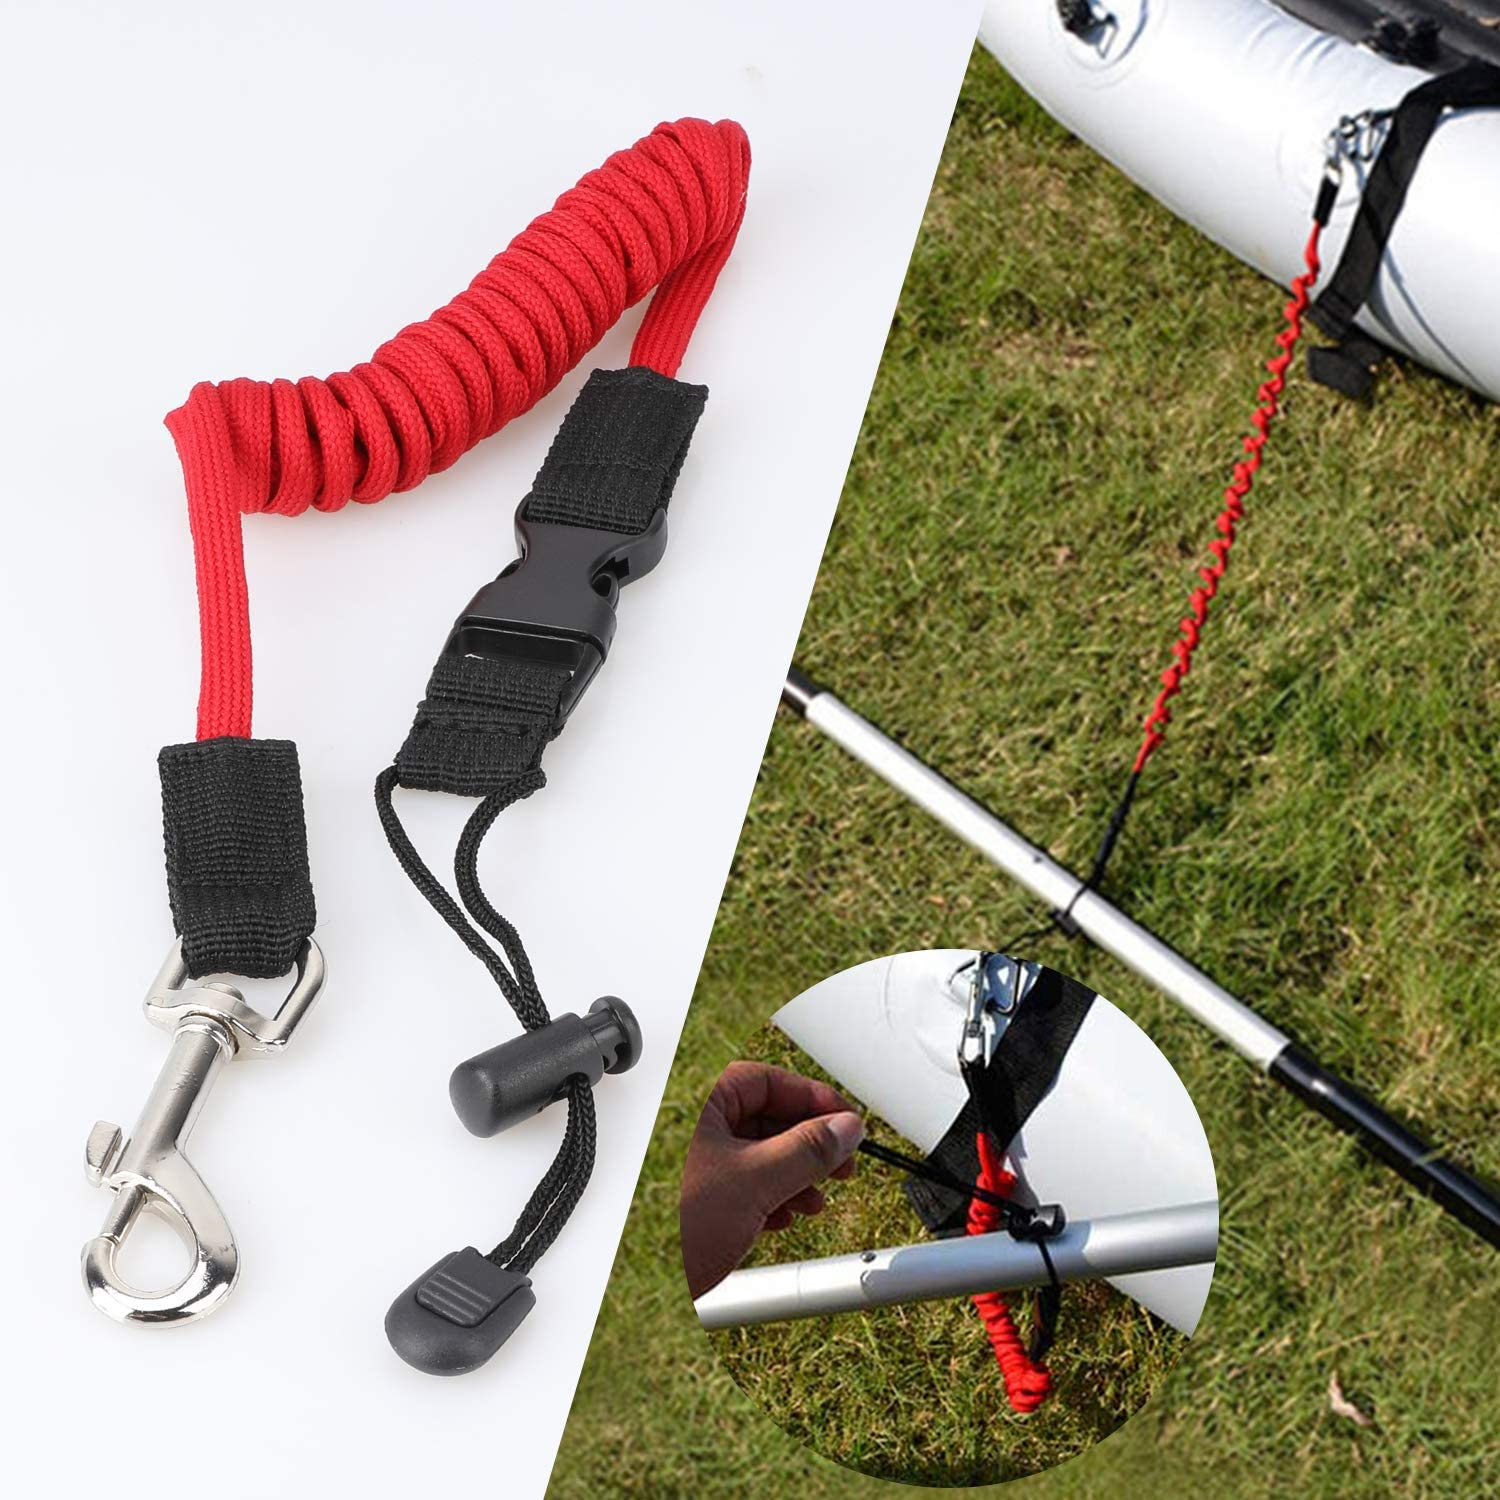 Fishing Poles Rods Surfboard 3 Pack Stretchable Kayak Paddle Leash Tether for Kaying Canoe SUP Board Paddles QKURT Red Paddle Leash